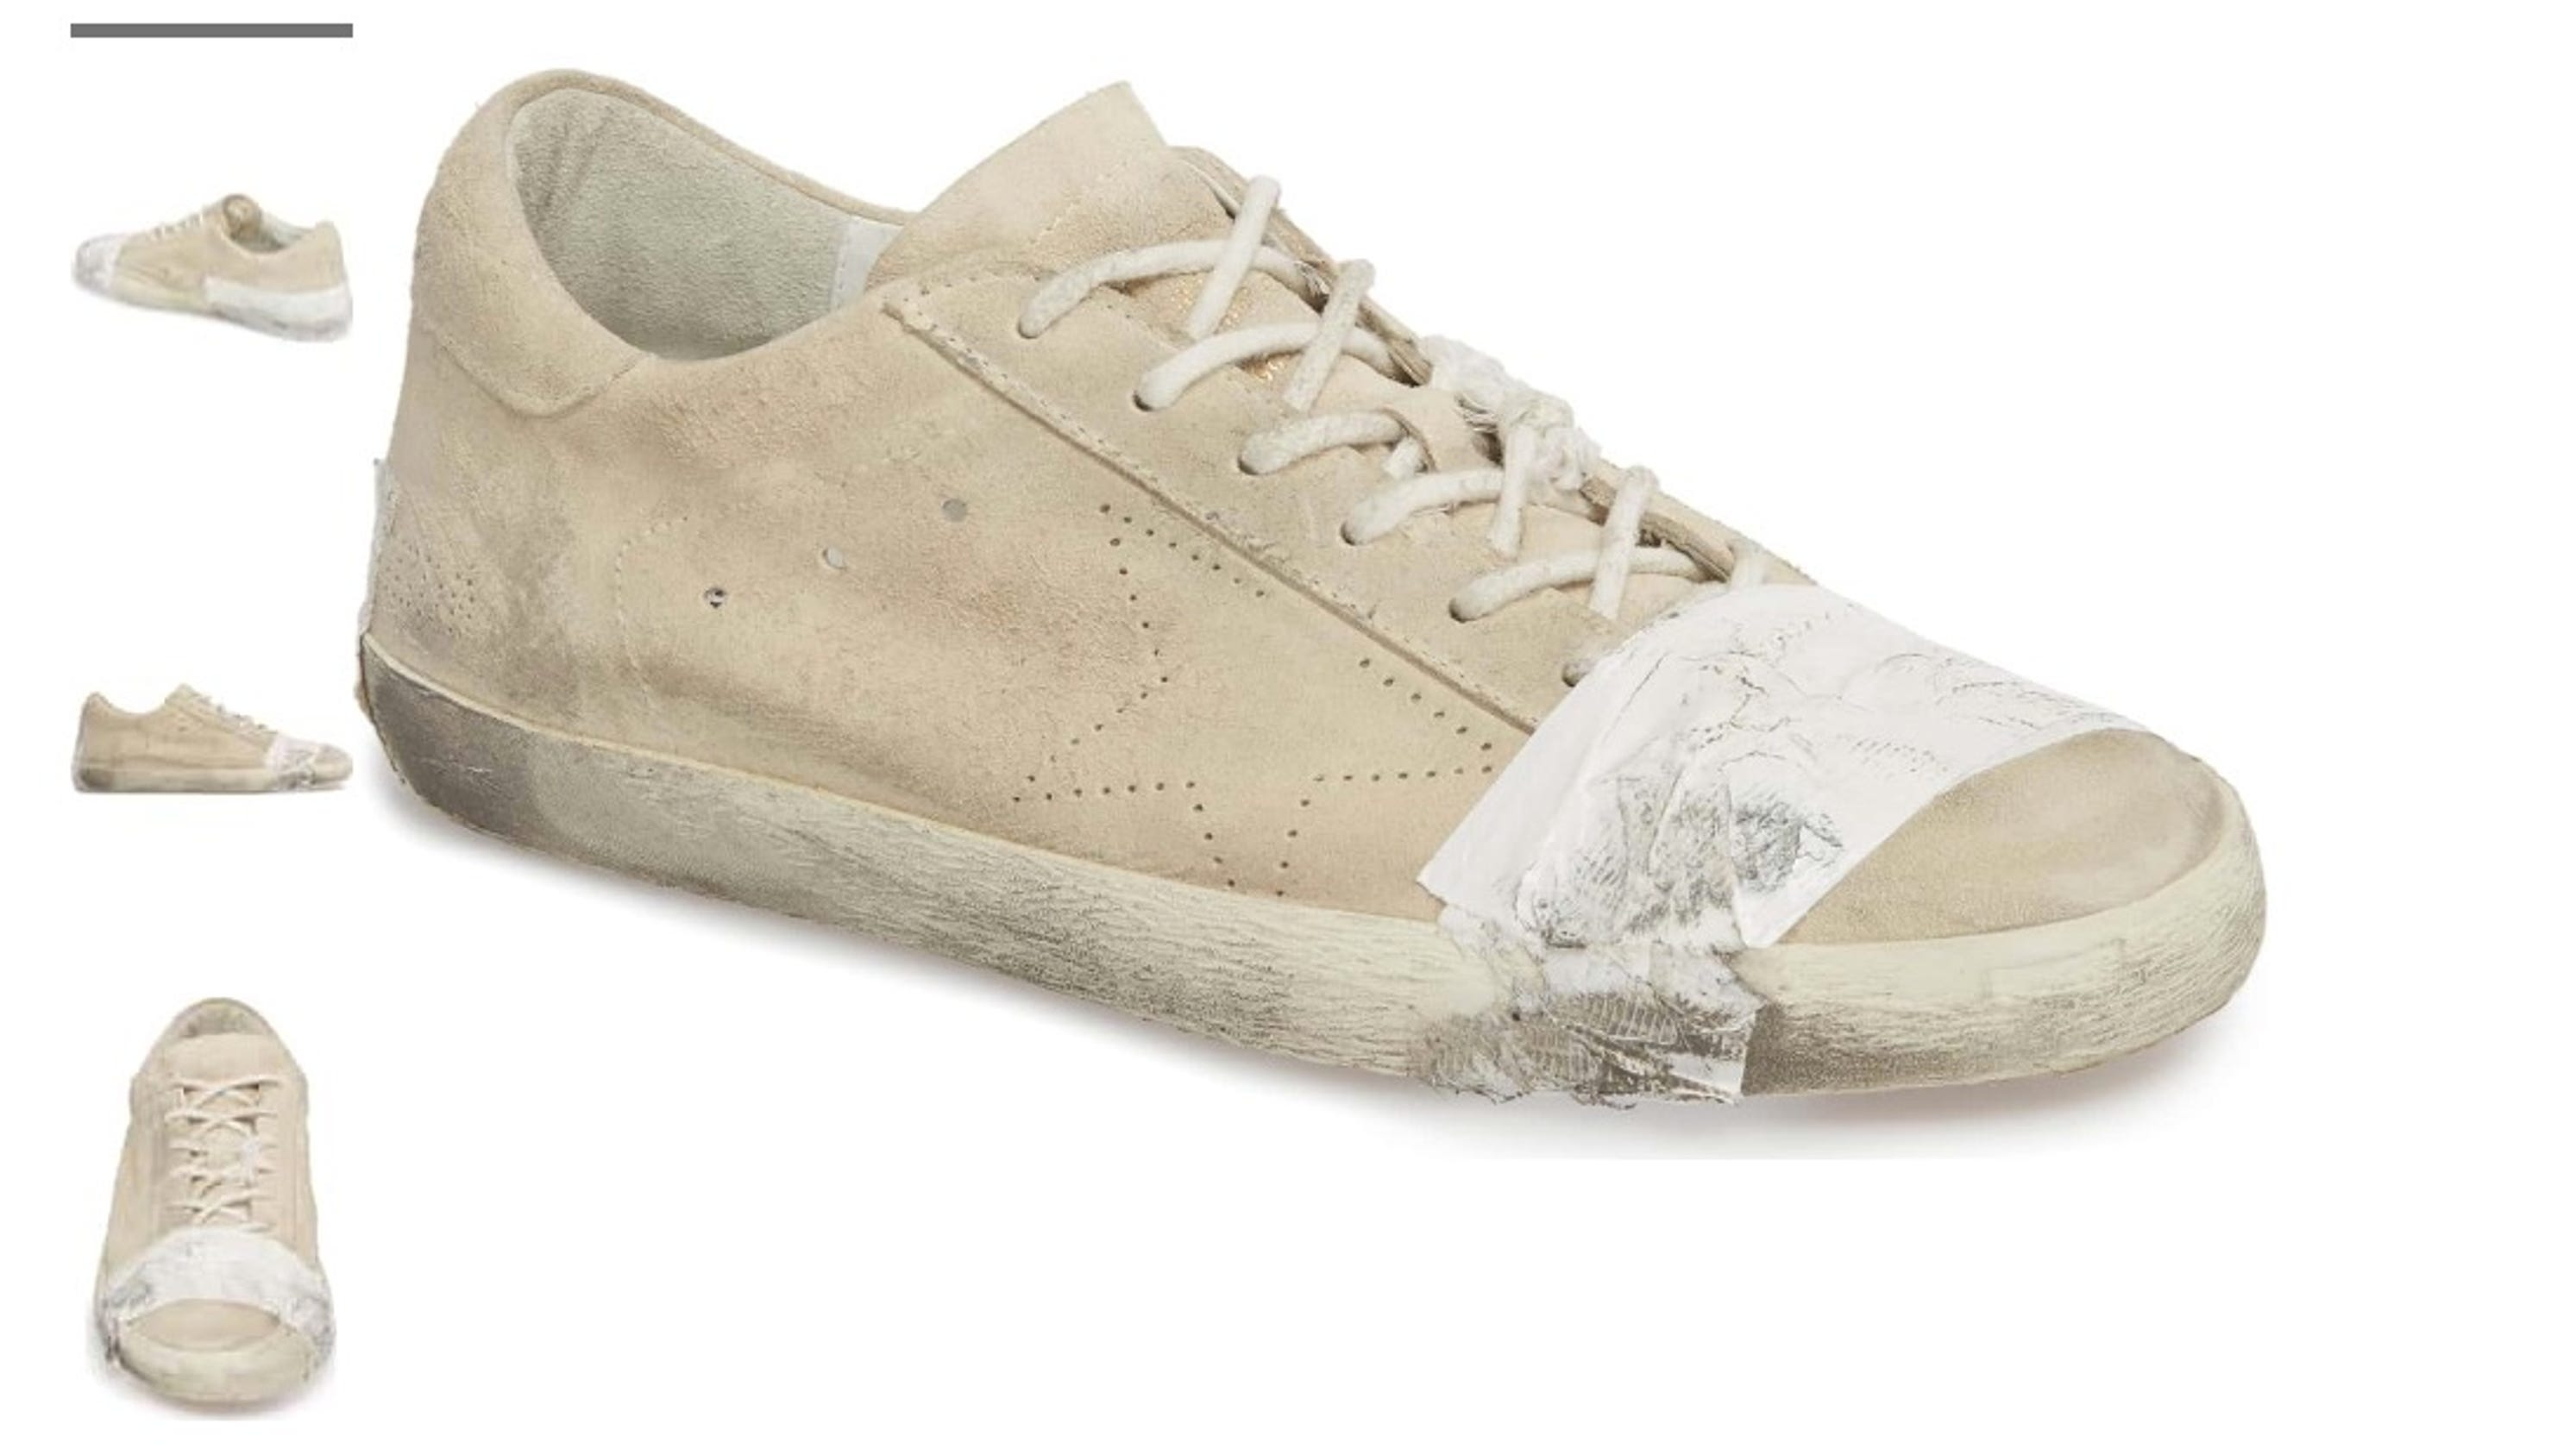 f68a81ec80e Nordstrom's $530 taped-up sneakers sell out despite consumer outcry